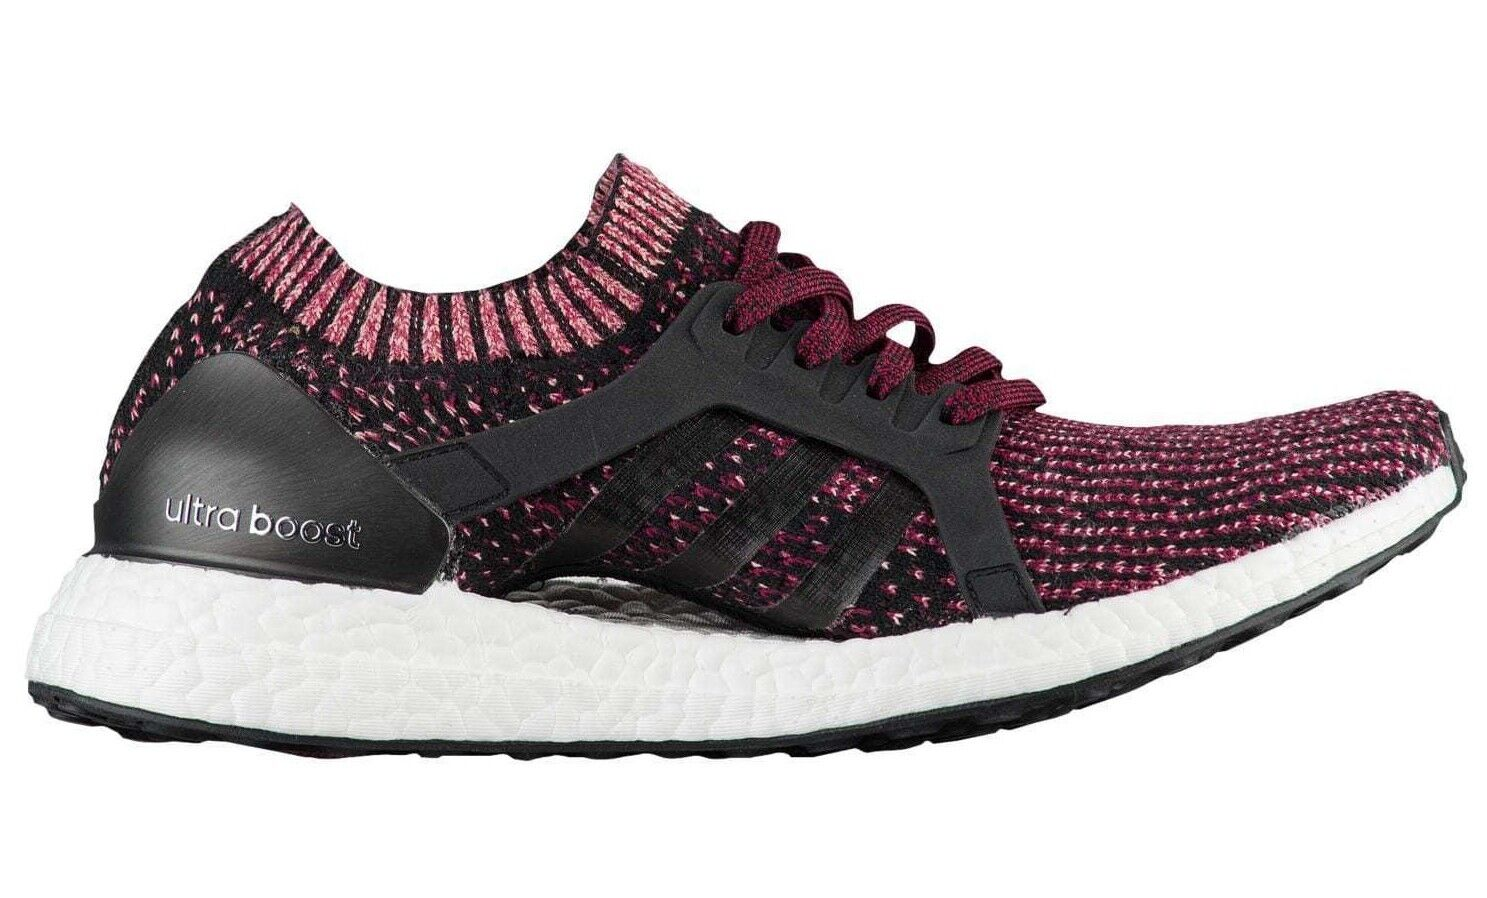 Adidas ULTRABOOST X Core Black Mystery Ruby Running BY1674 (462) Women's shoes